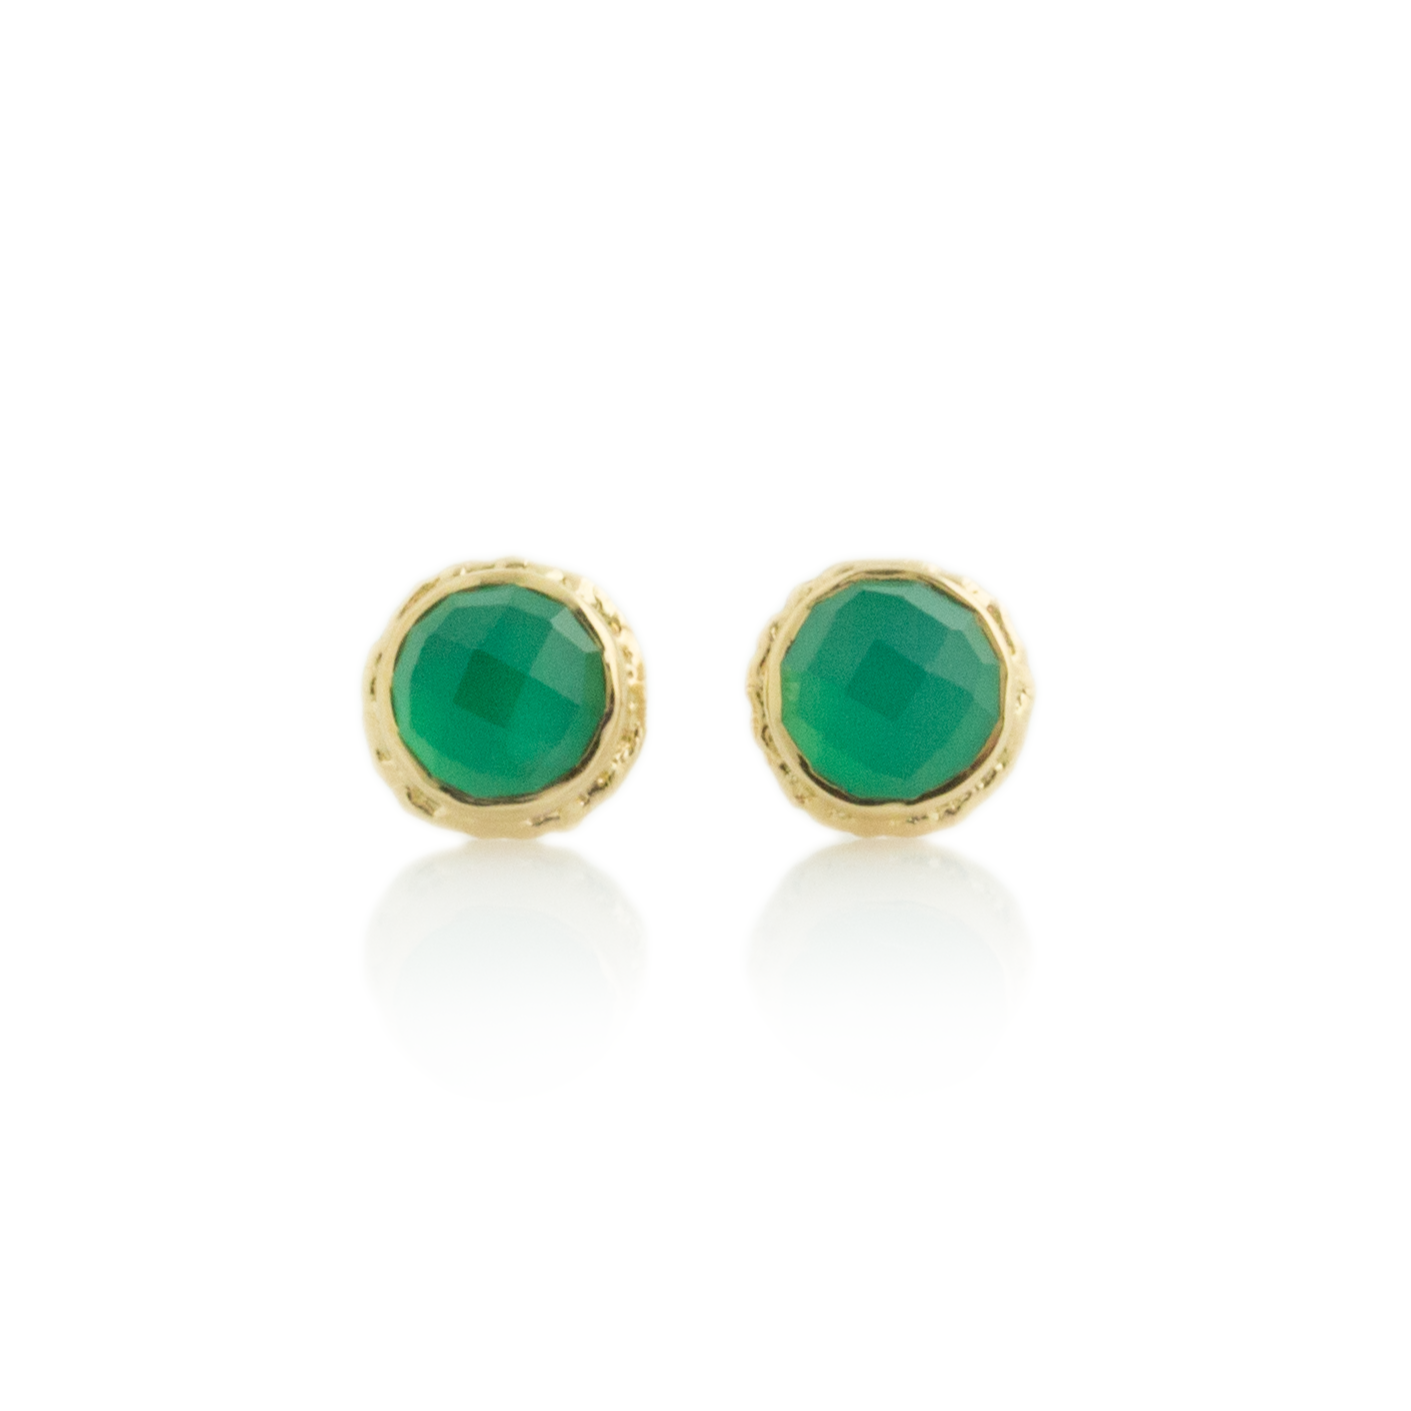 14K Gold Green Onyx Post Earrings